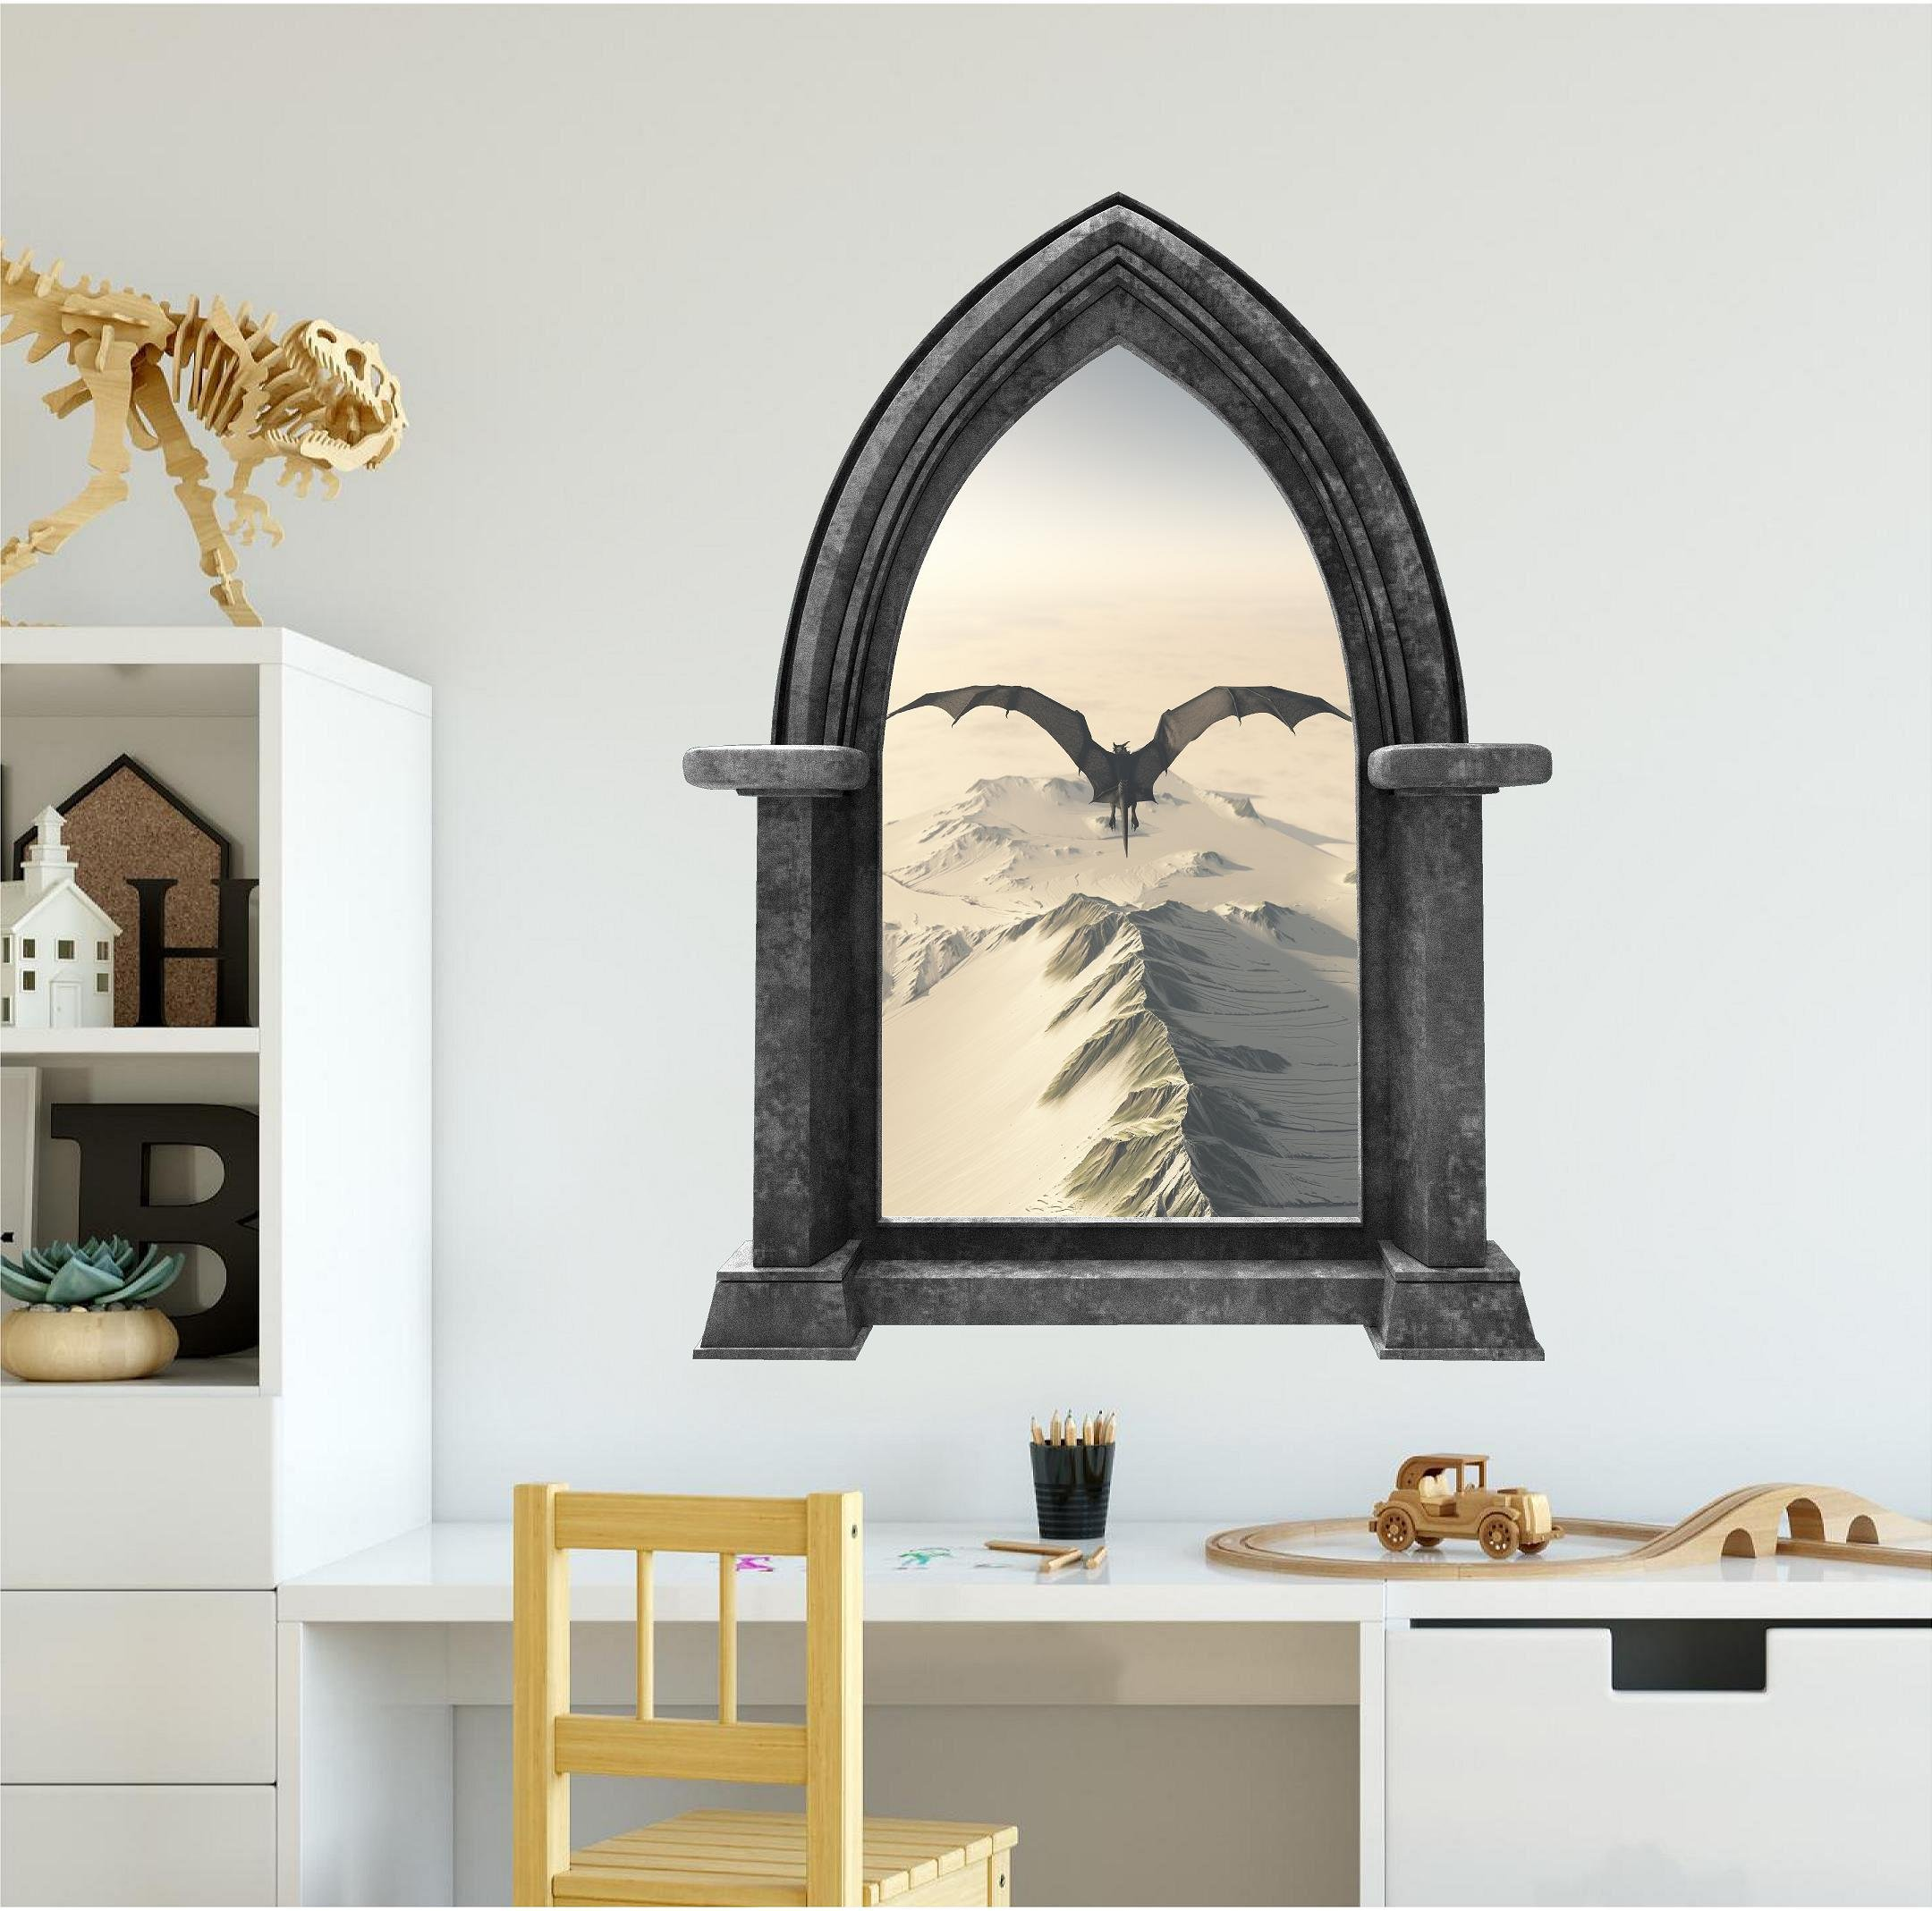 48'' Castle Scape Instant Fantasy Window View BLACK DRAGON #2 GRANITE HUGE Wall Decal Sticker Mural Fairy Tale Kids Boys Bedroom Decor Game Of Thrones